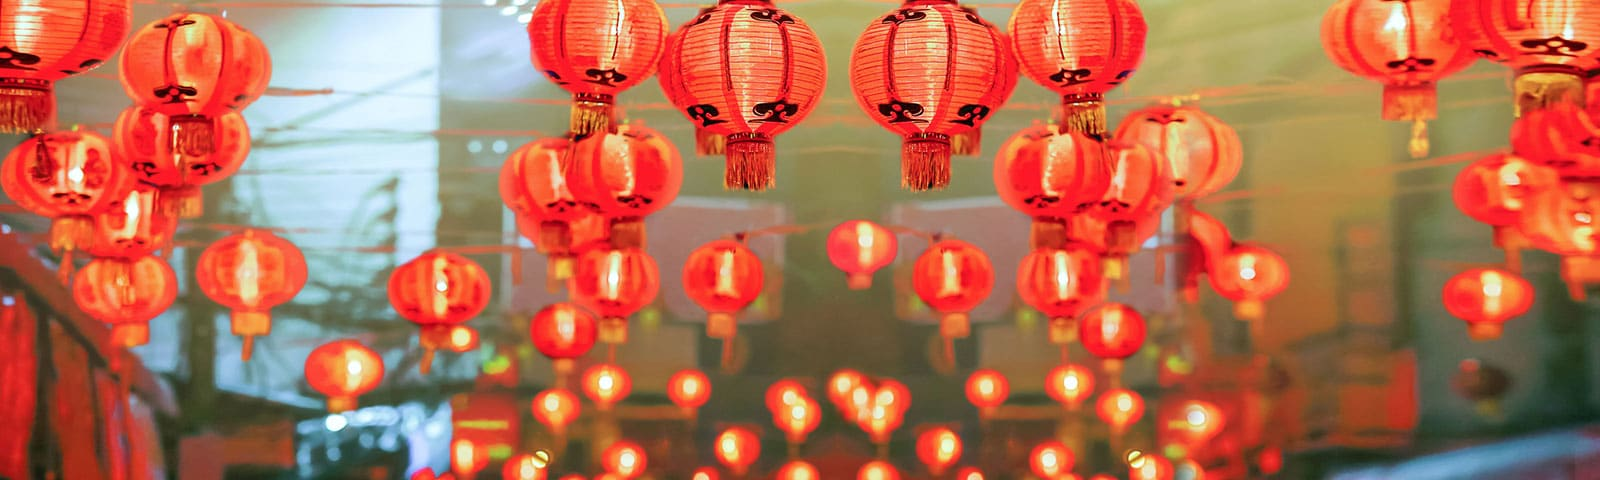 Jay C Food Stores - Lunar New Year Party Tips and Tricks